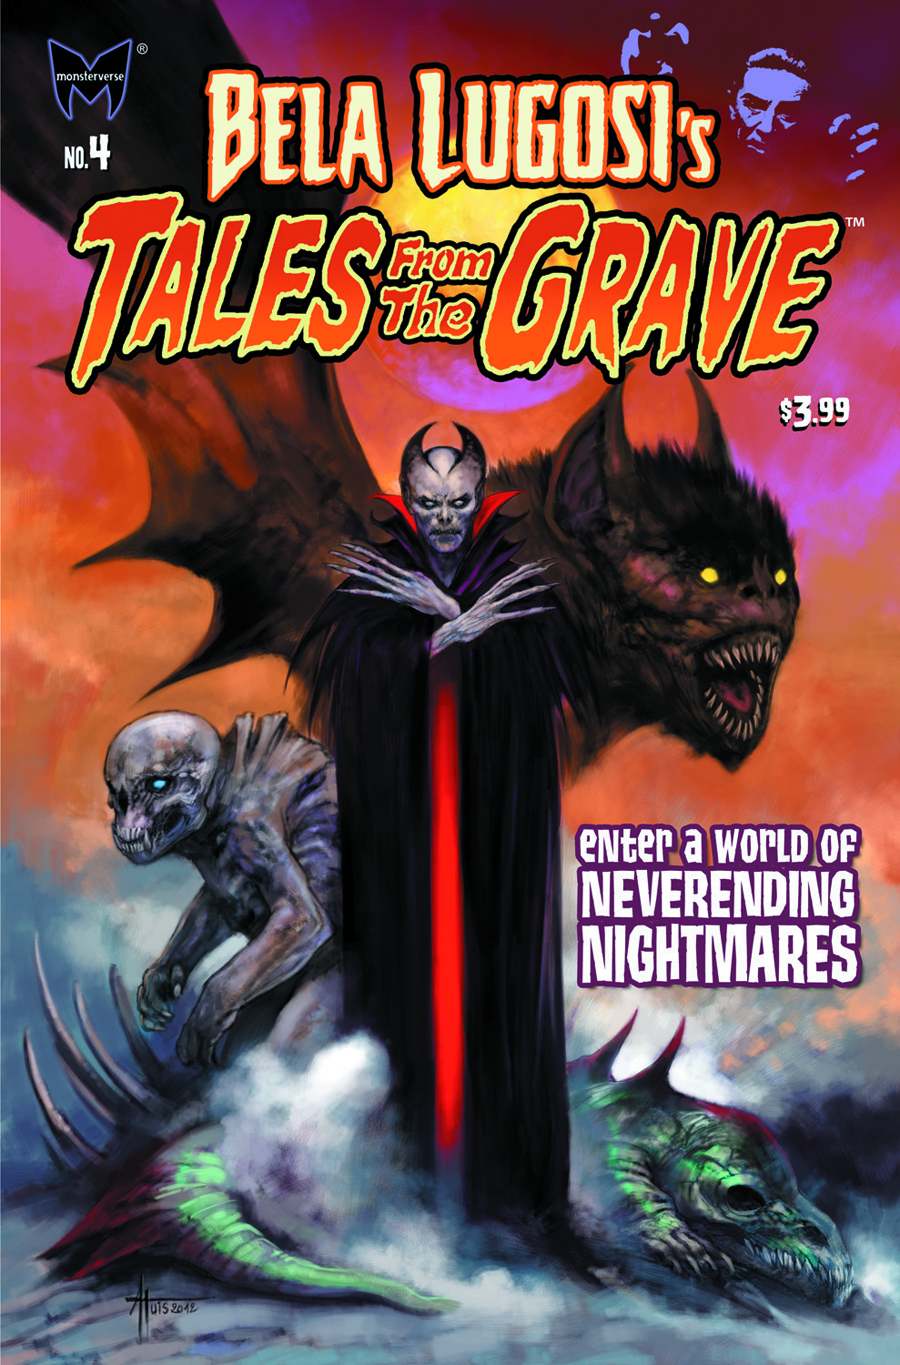 BELA LUGOSI TALES FROM GRAVE #4